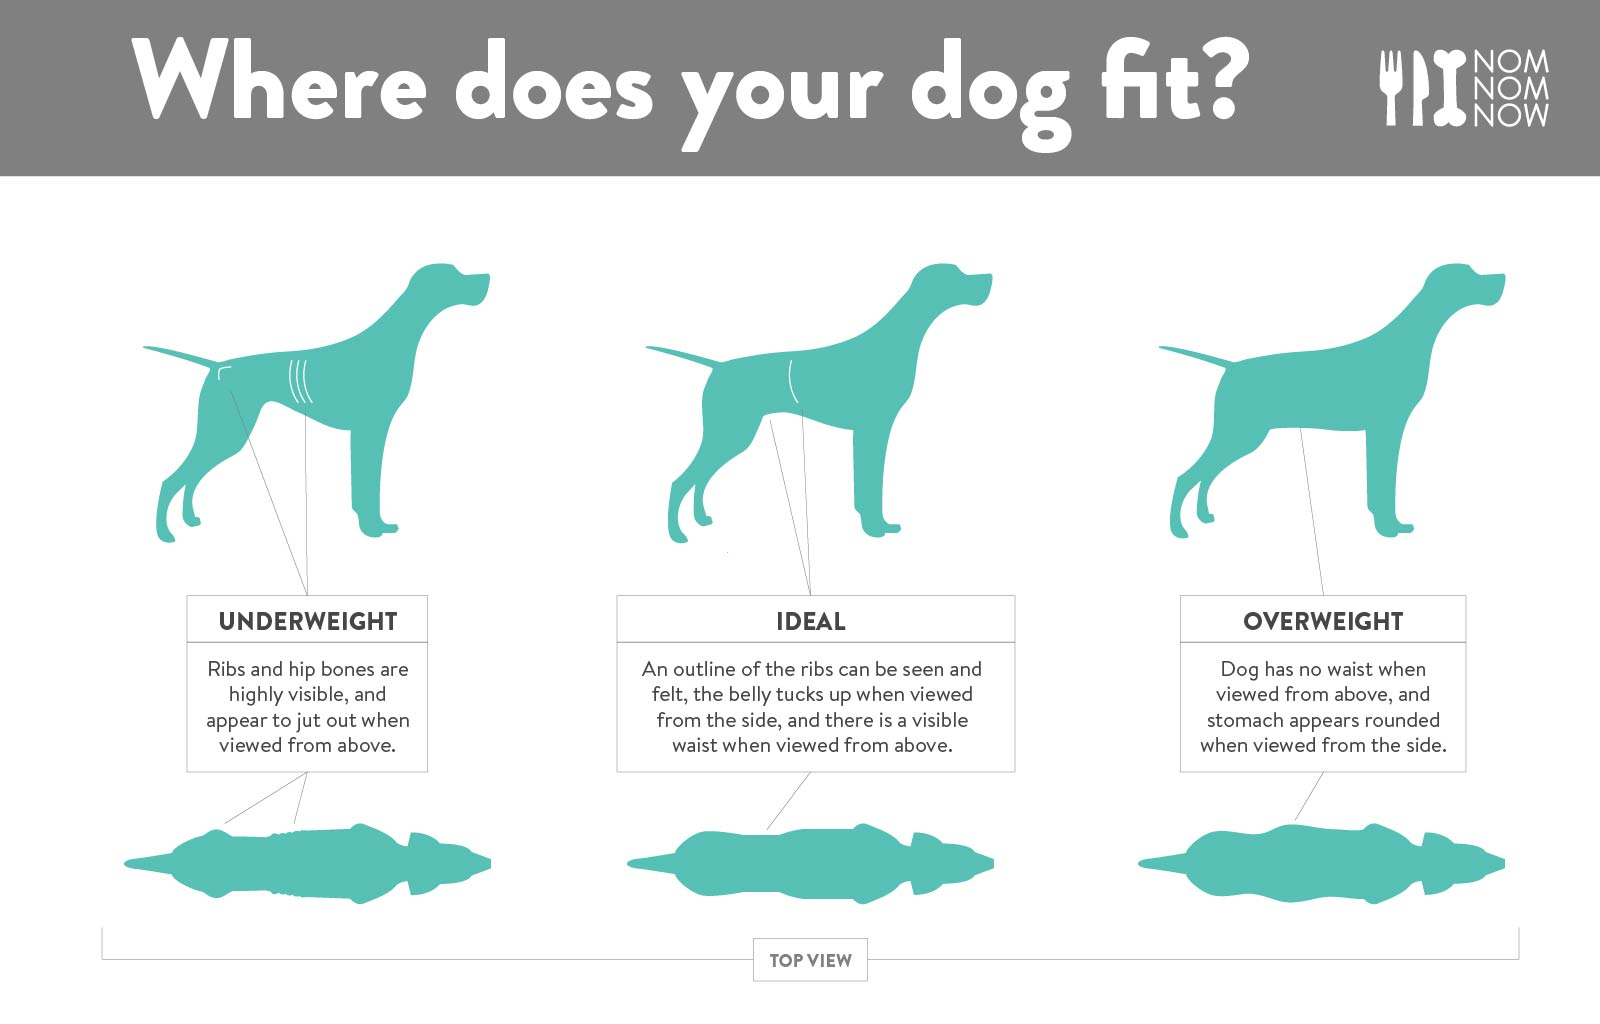 dog-ideal-weight-infographic-l-nomnomnow.jpg